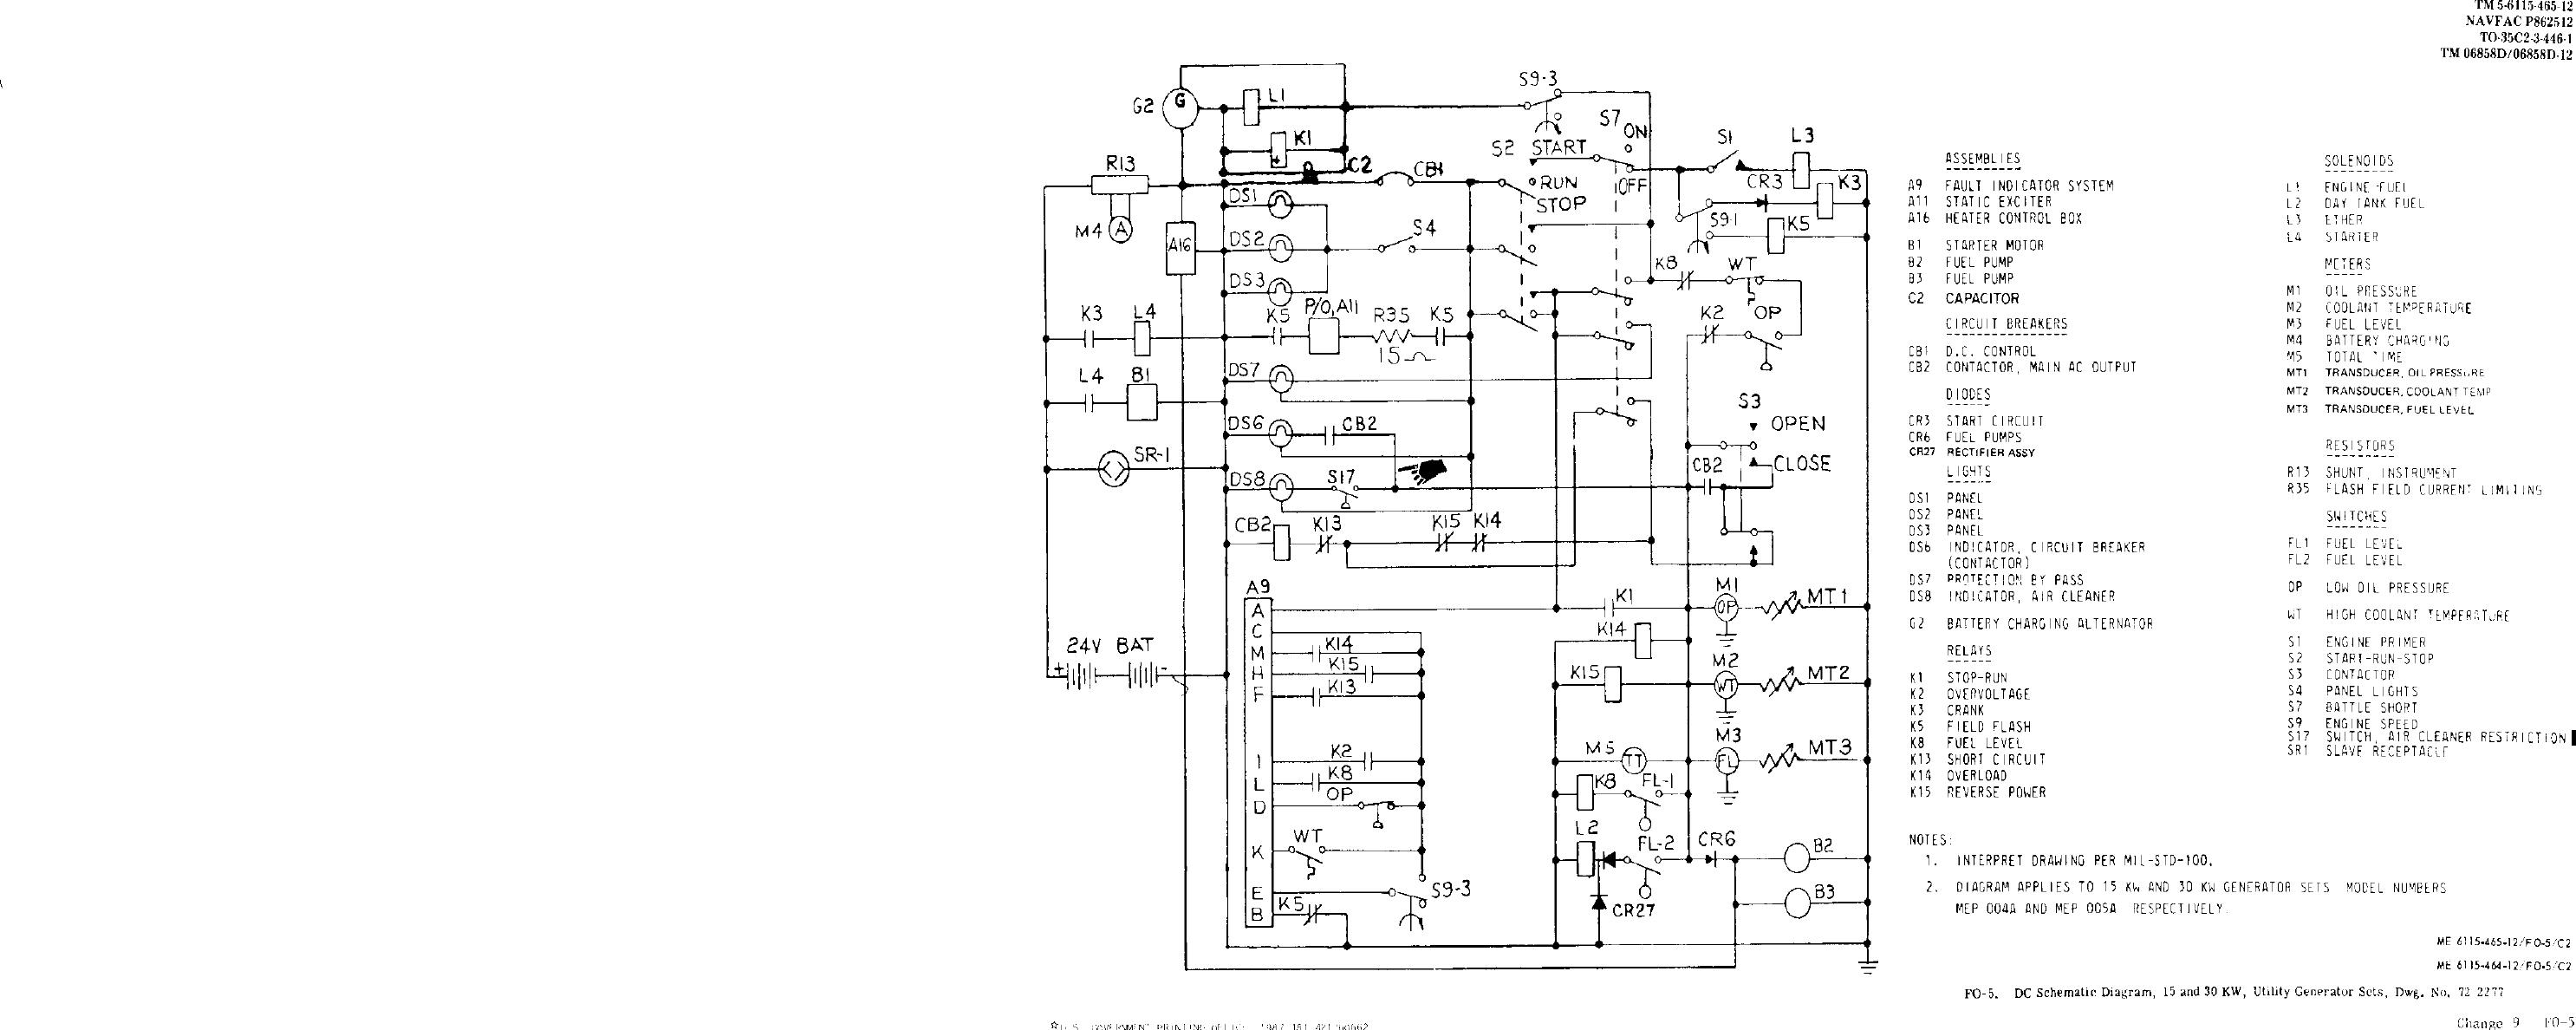 Fo 5 Dc Schematic Diagram 15 And 30 Kw Utility Generator Sets Interpreting Schematics Diagrams Tm 6115 465 12 Set Diesel Engine Driven Tactical Skid Mtd 3 Phase 4 Wire 120 208 240 416 Volts Manual Page Navigation